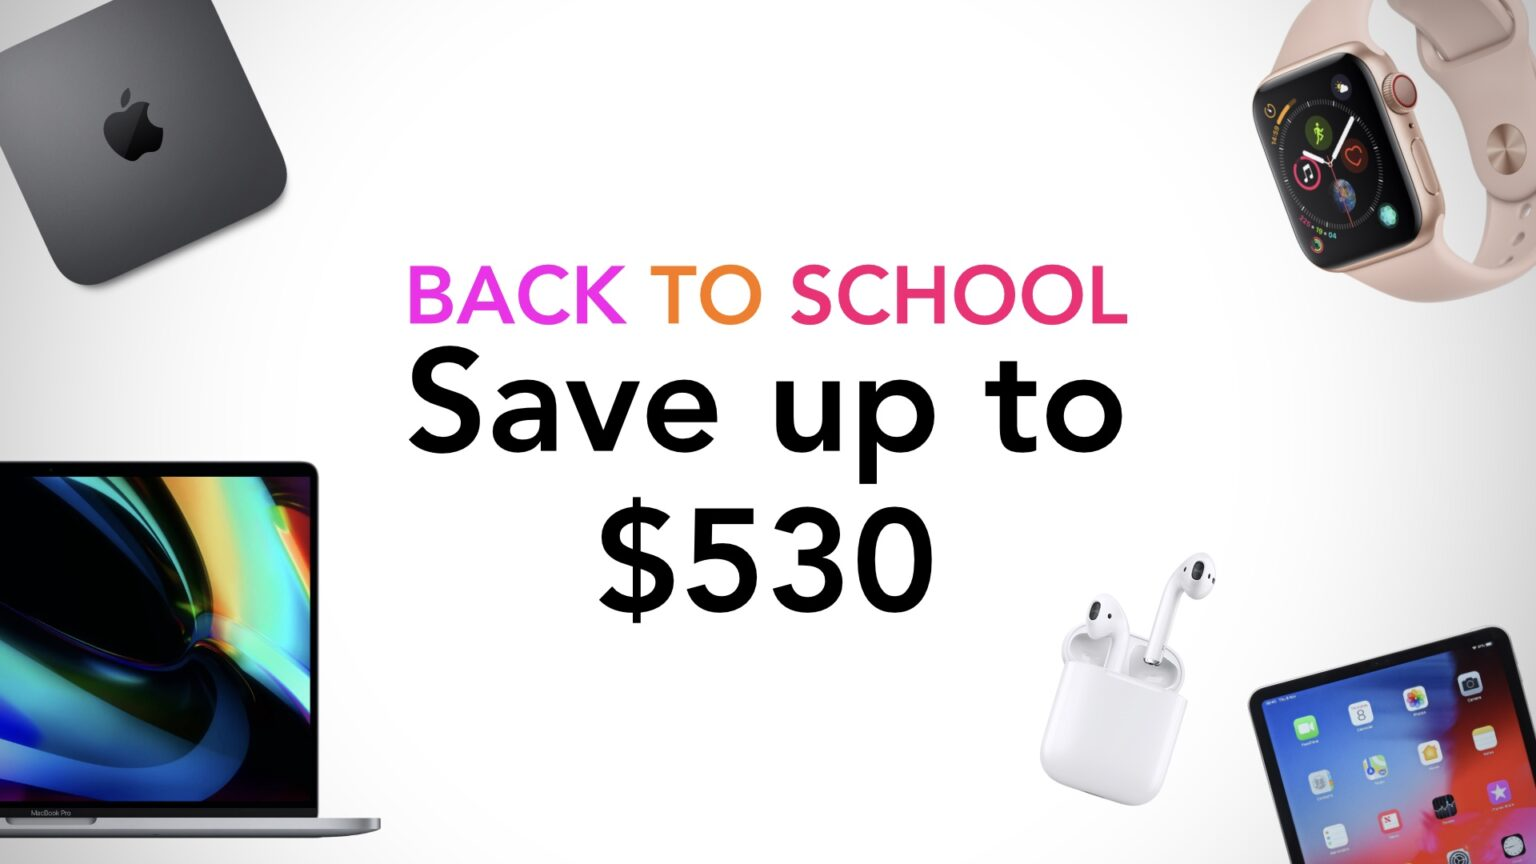 Back to School sale on iPad, Mac